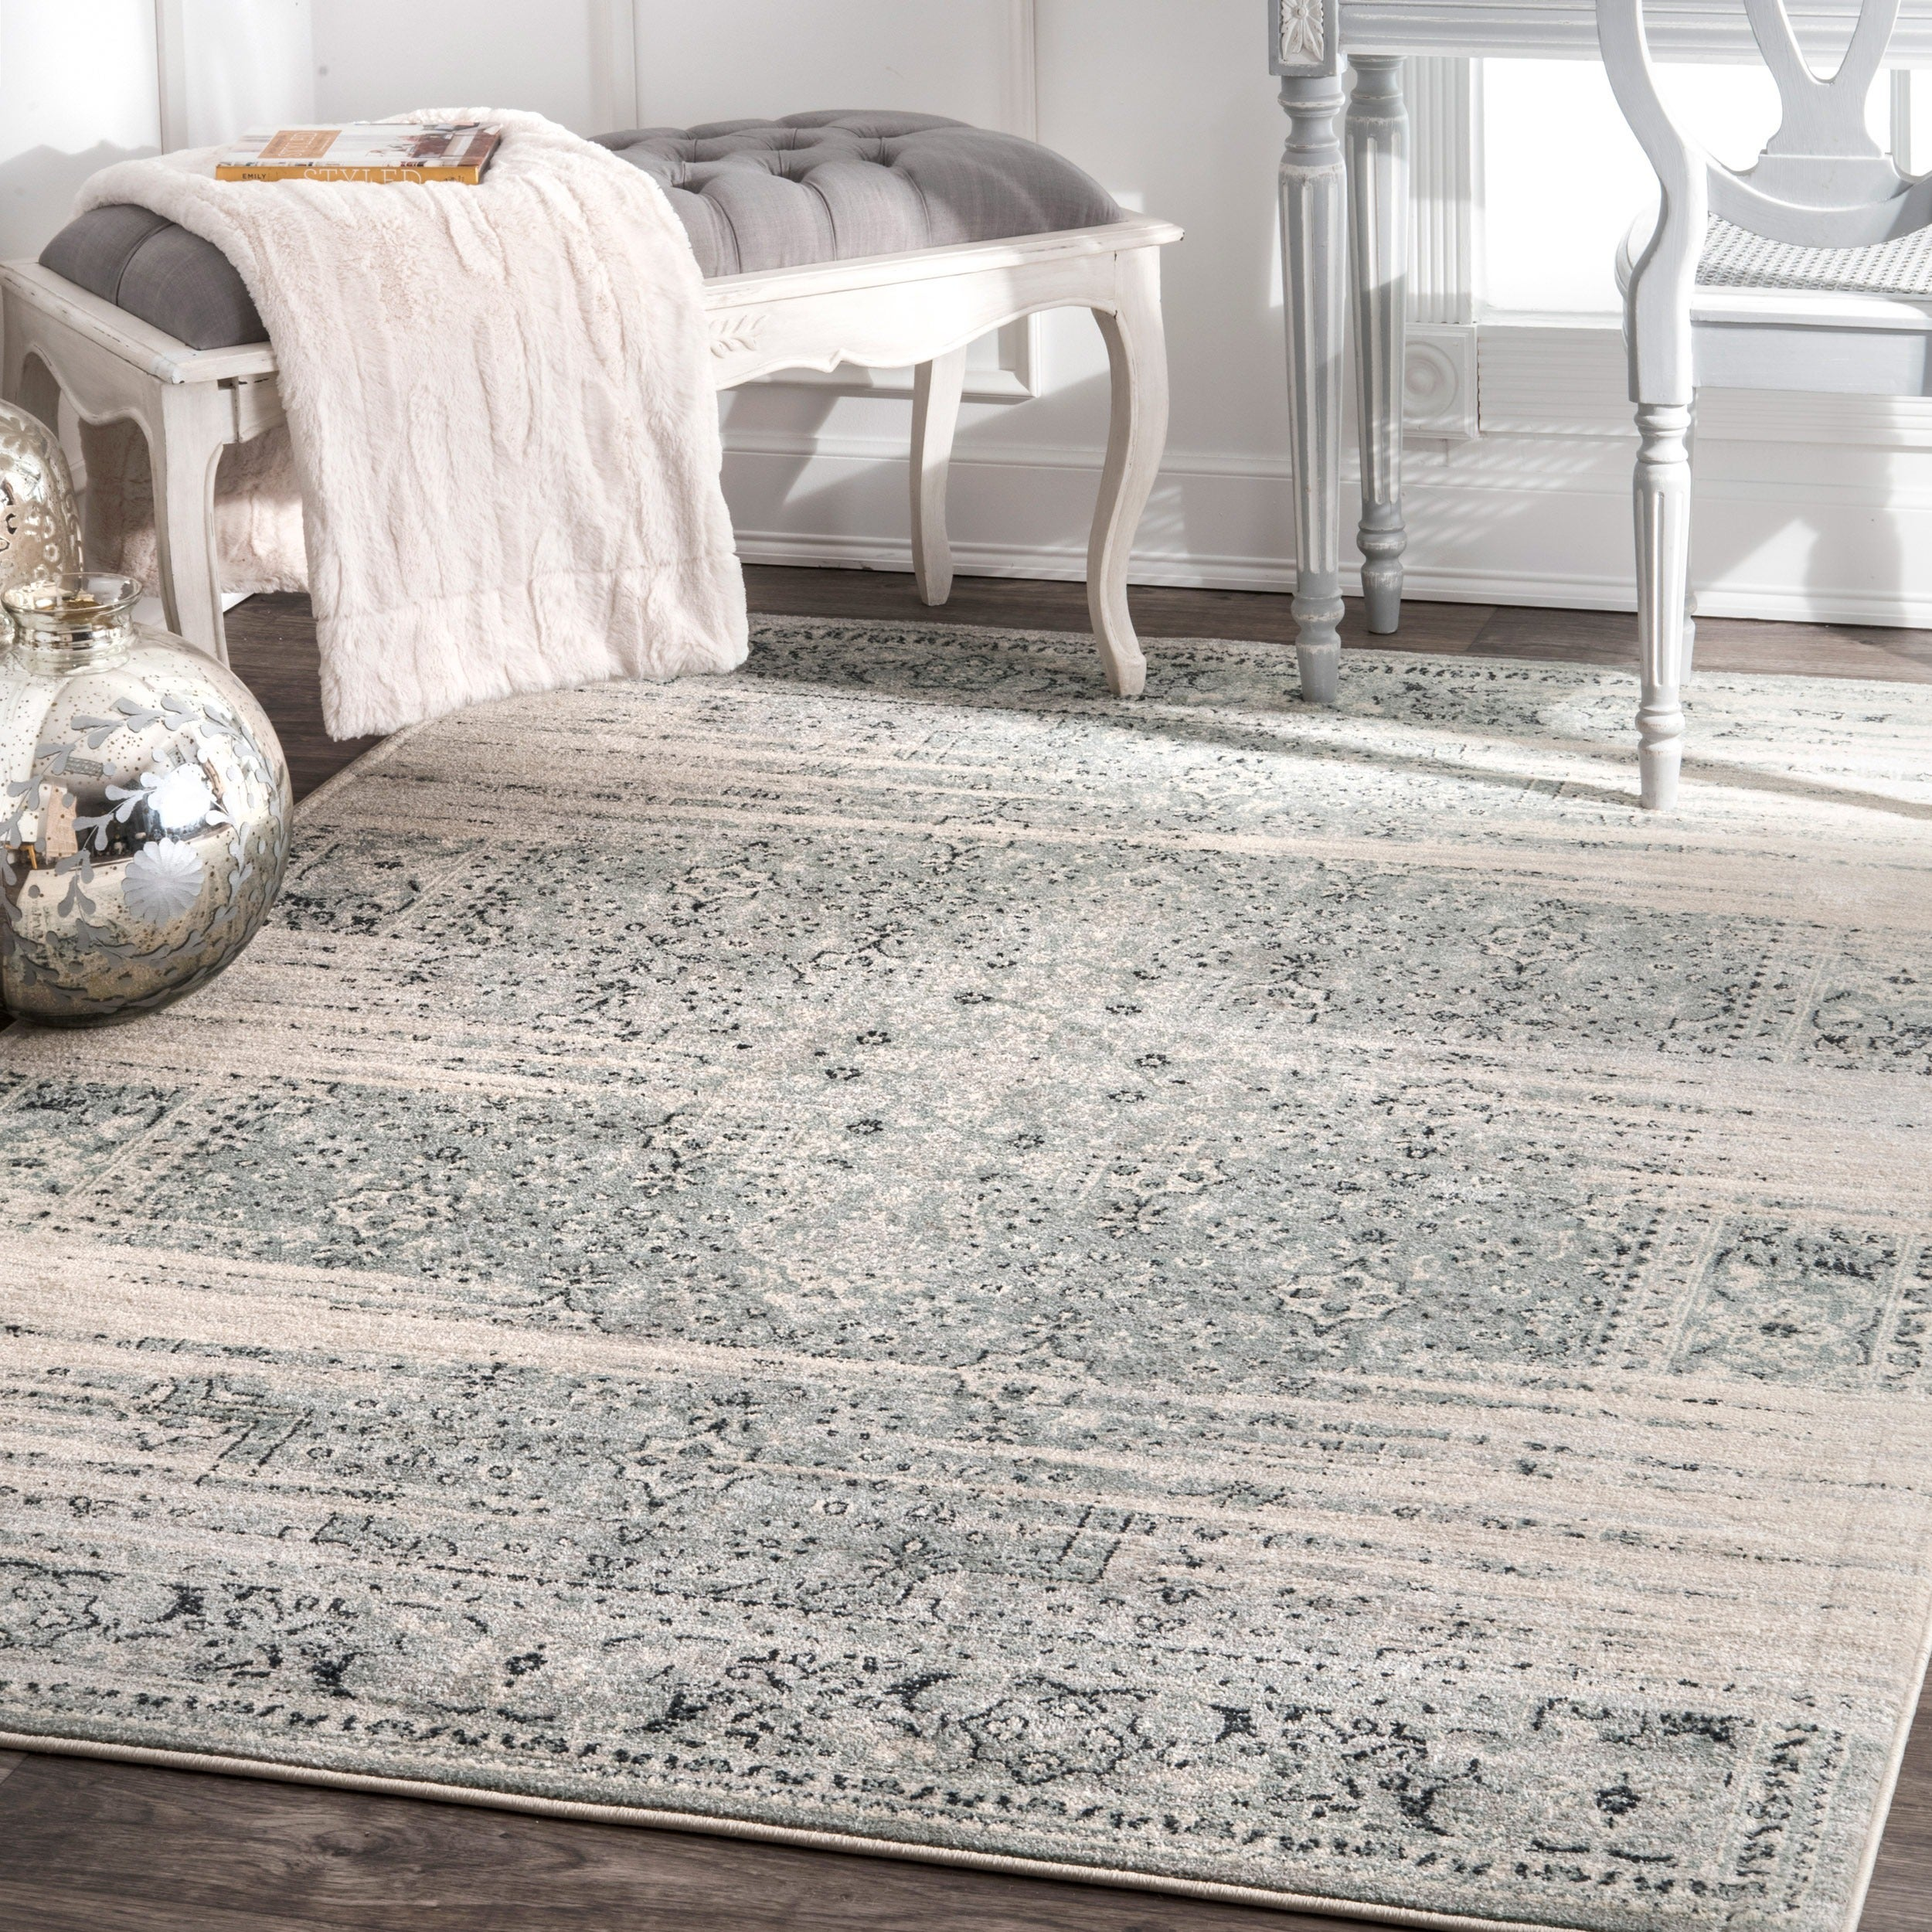 Shop Nuloom Traditional Vintage Abstract Blue Rug 5 3 X 7